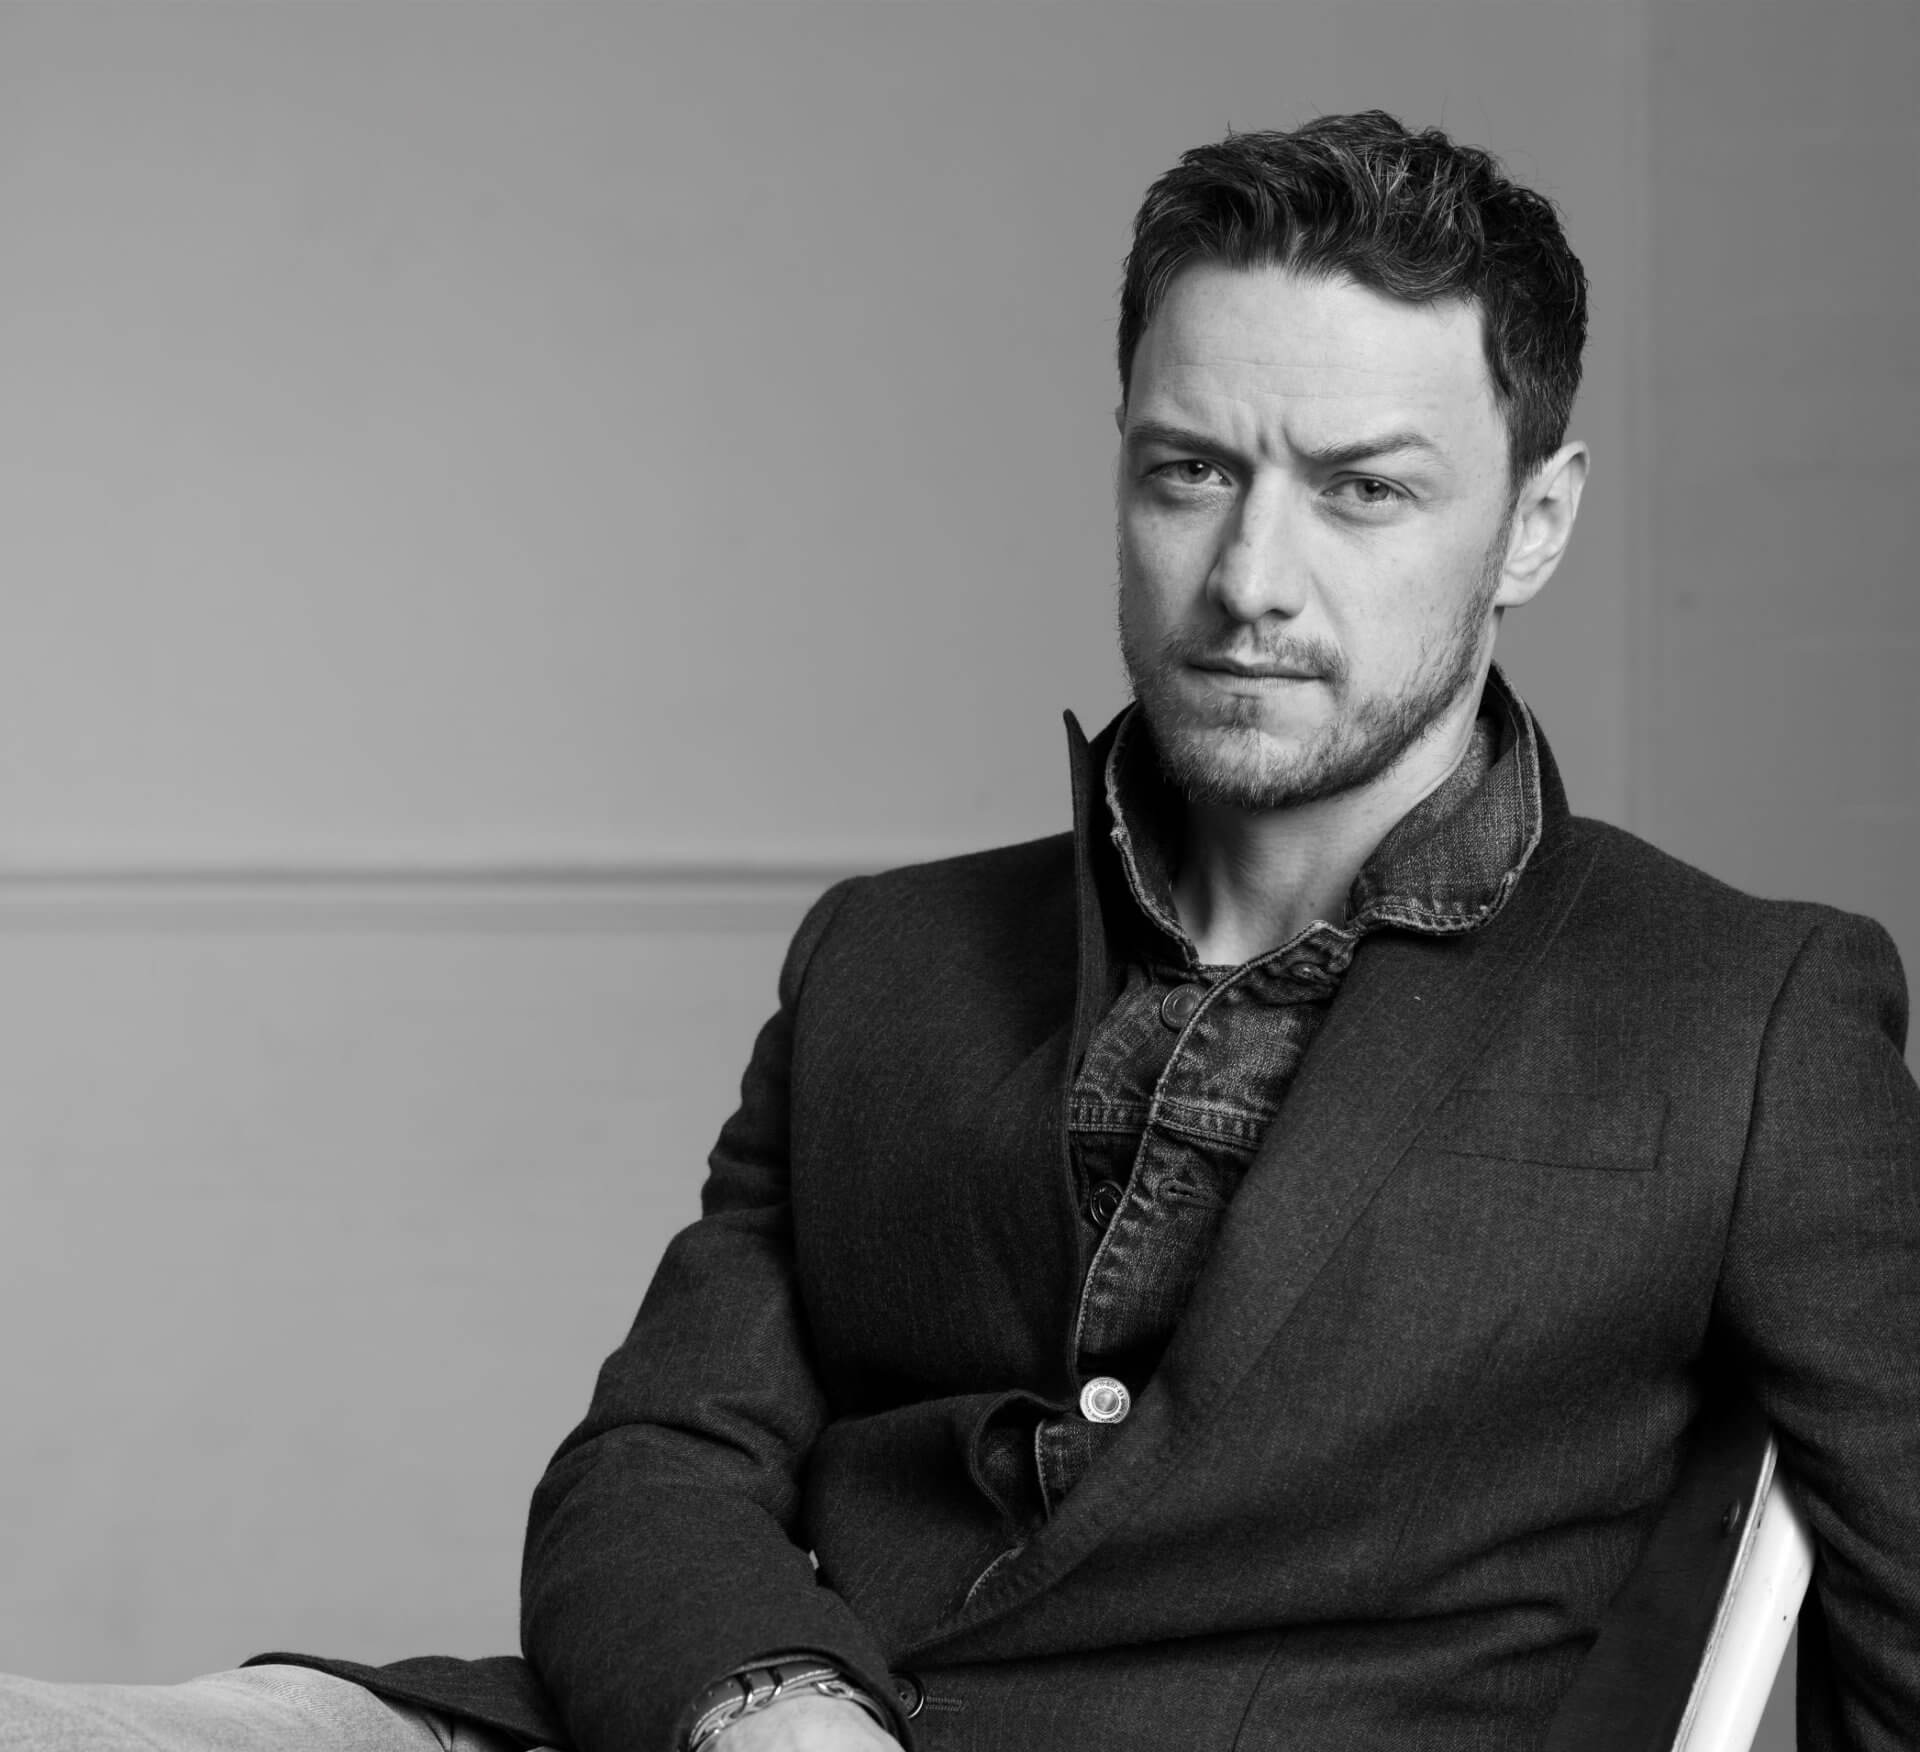 Actor and RCS graduate James McAvoy